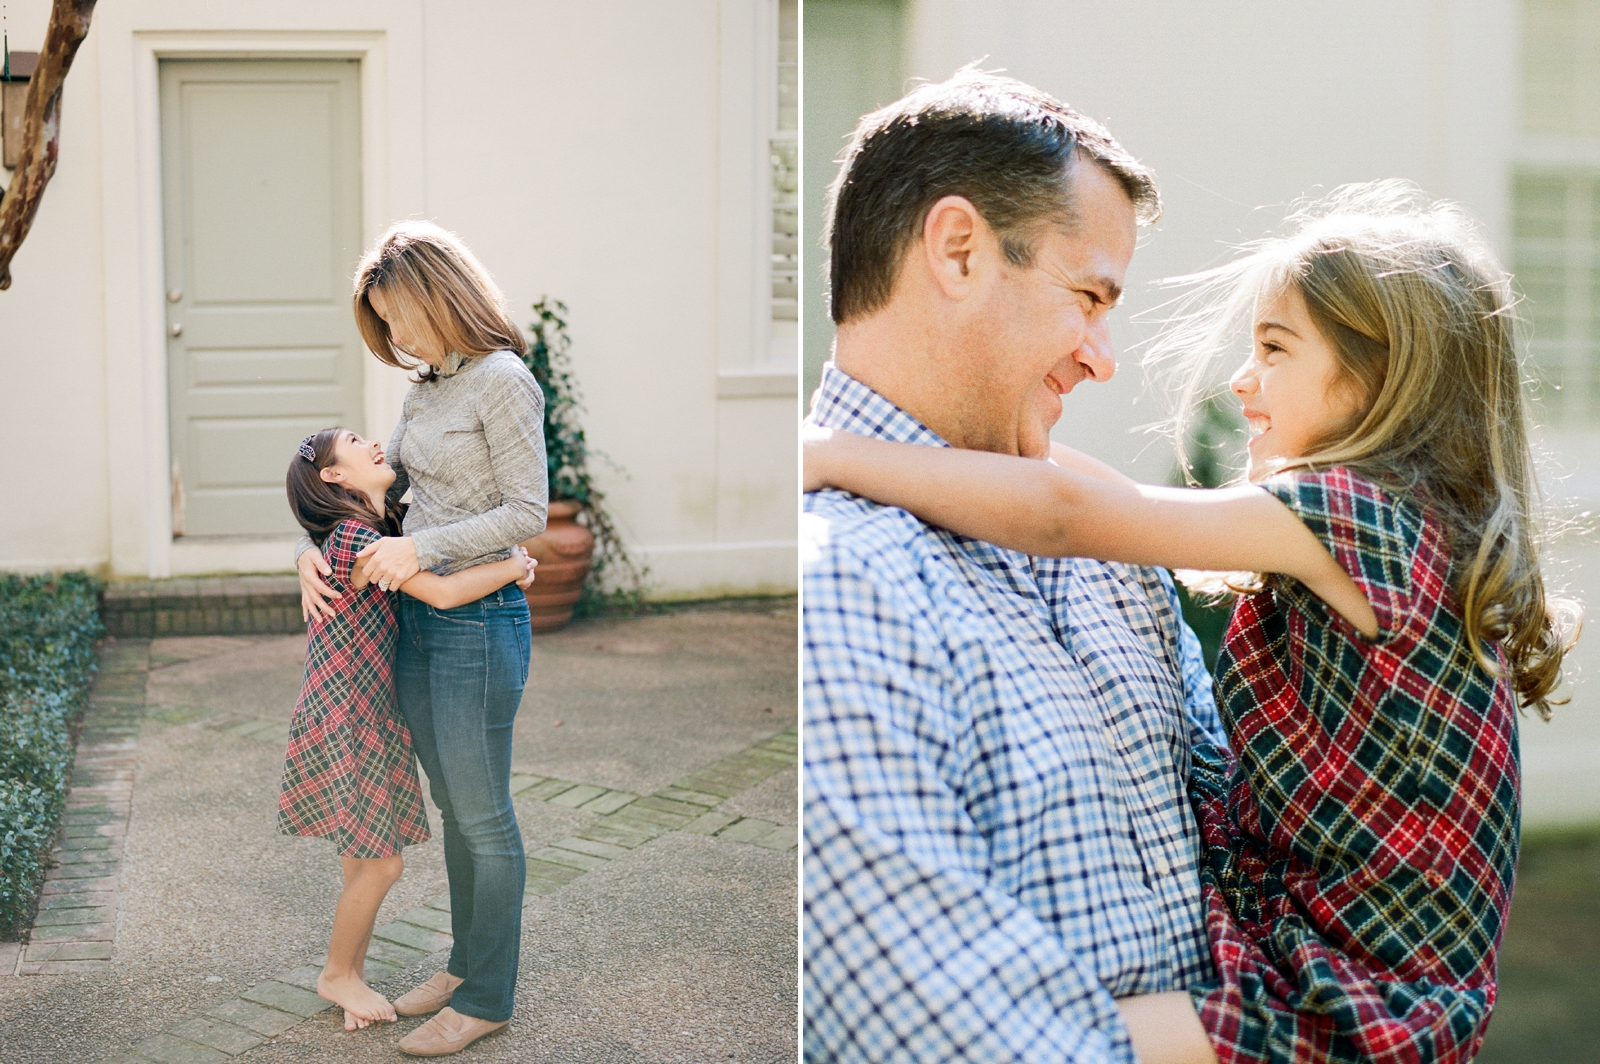 tallahassee_family_photographer_tallahassee_florida_shannon_griffin_0012.jpg